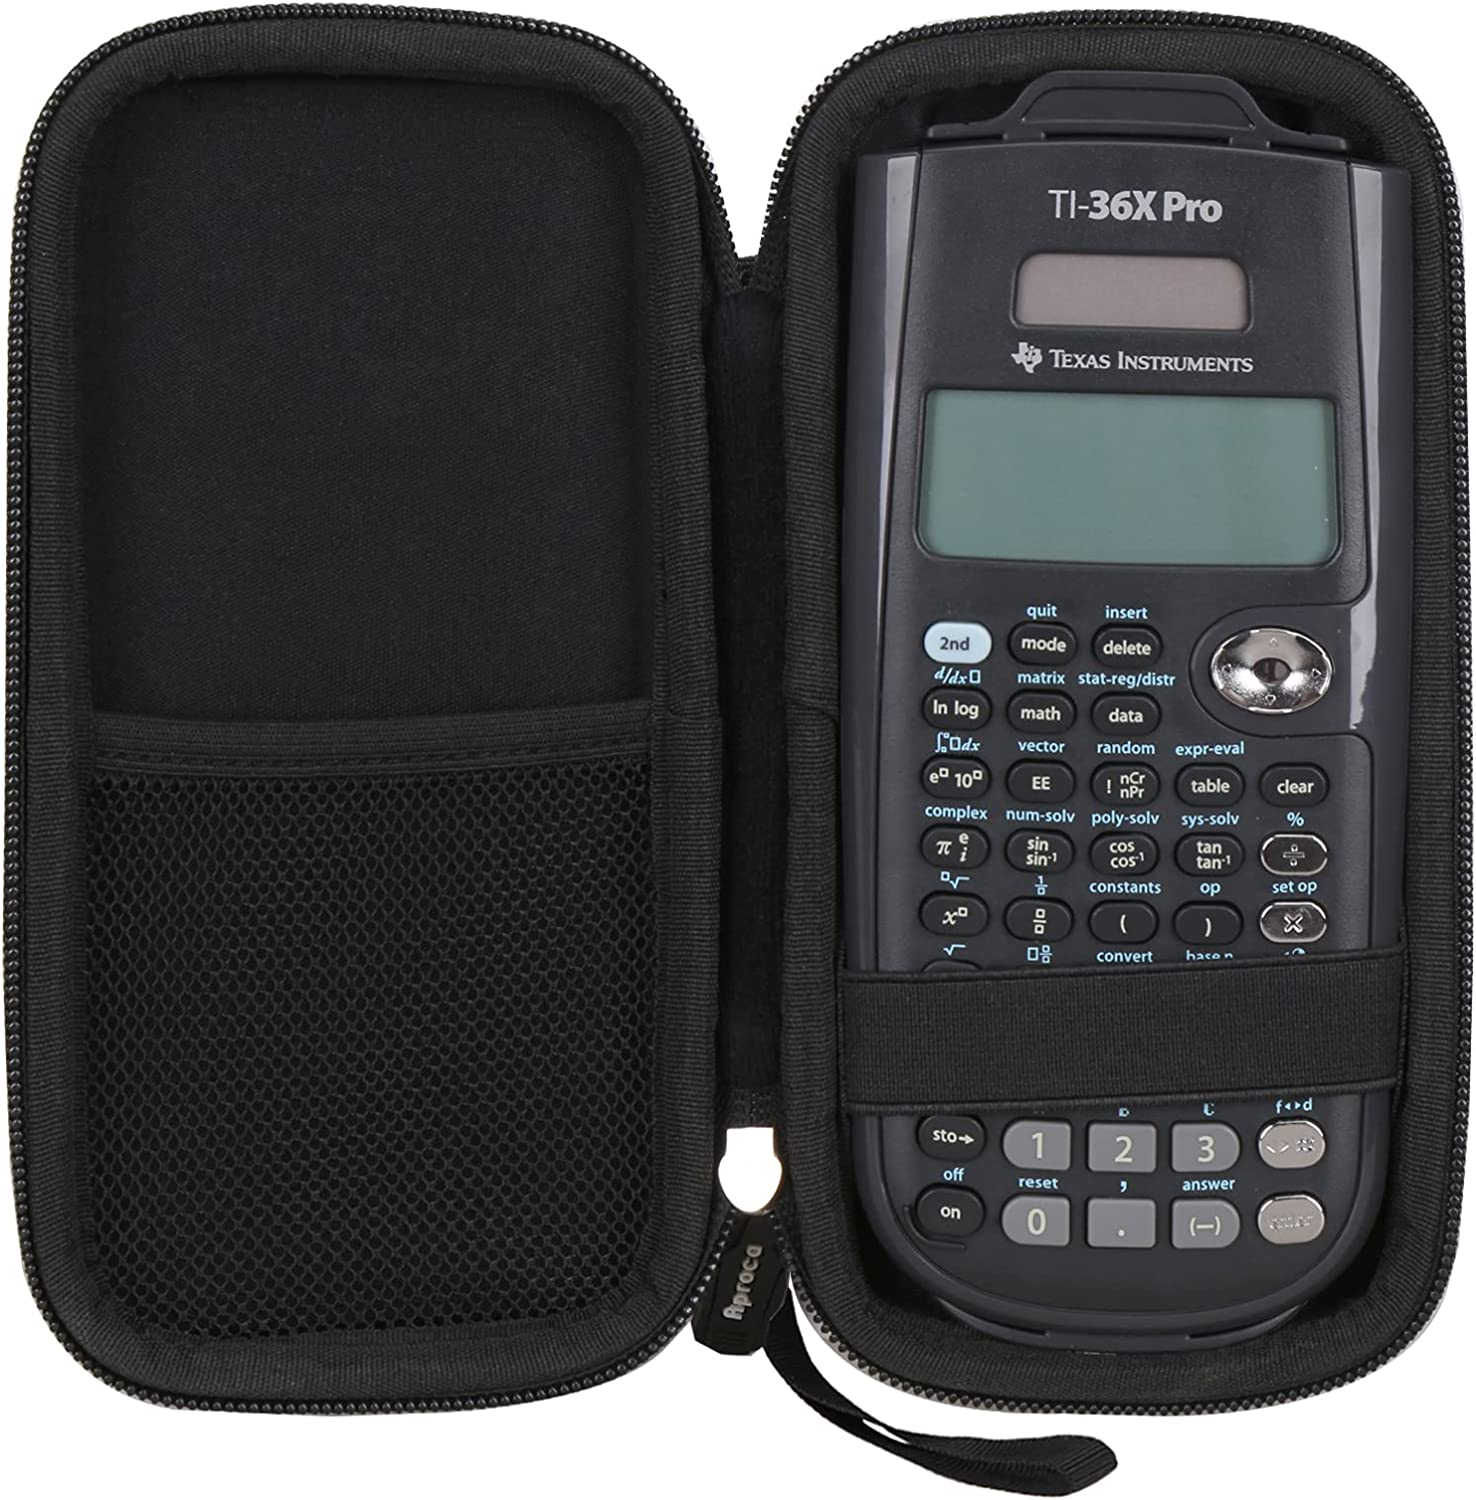 Large discharge sale Aproca Hard Travel Storage Case for Instruments Texas TI-36X Pr sold out